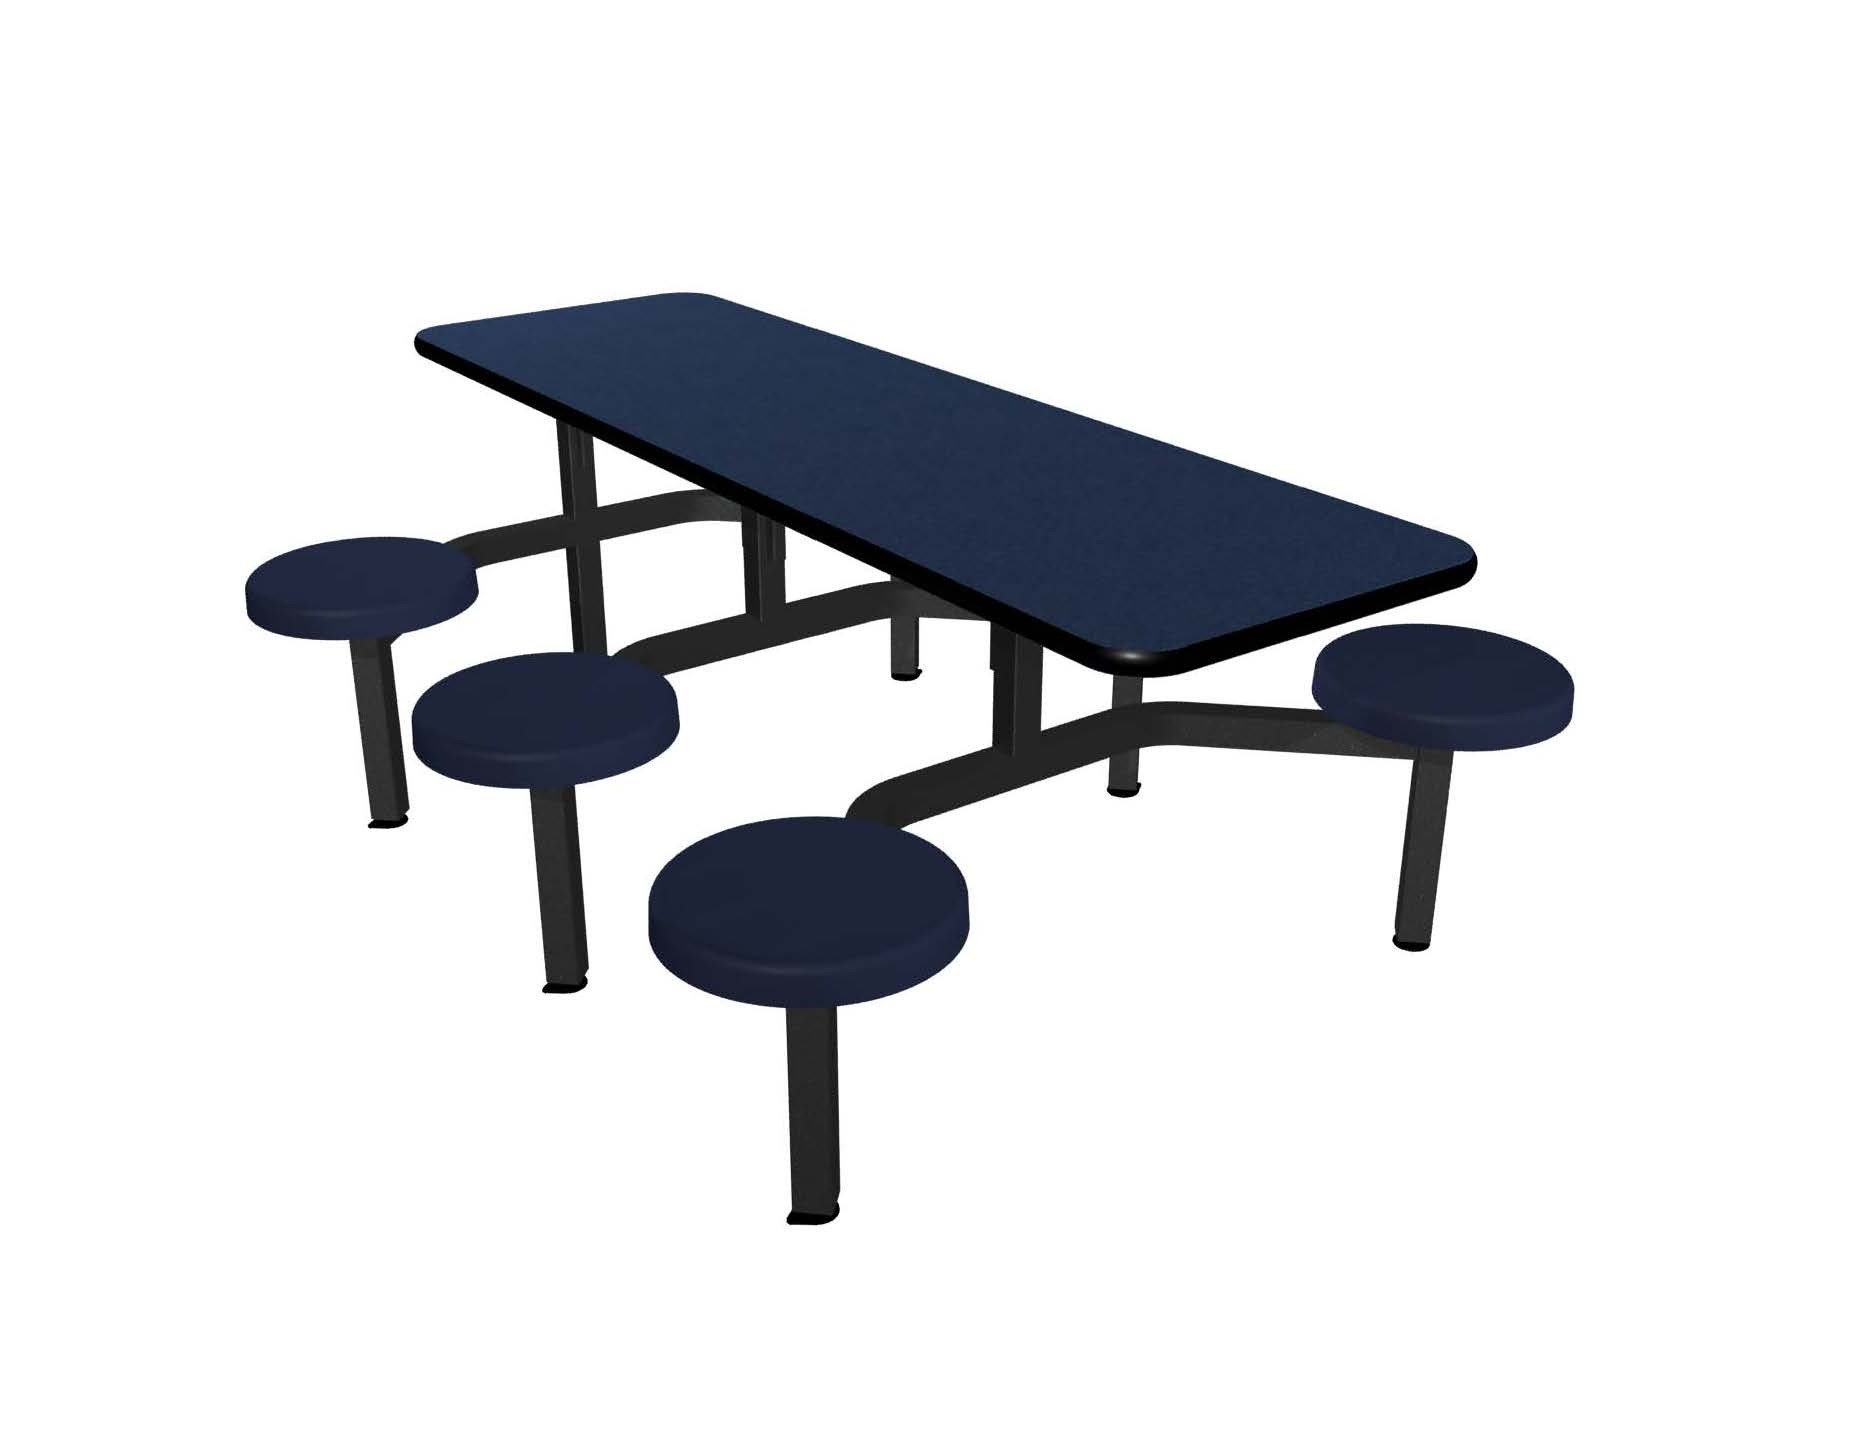 Navy Legacy laminate table top, Black Dur-A-Edge®, composite seat in Navy